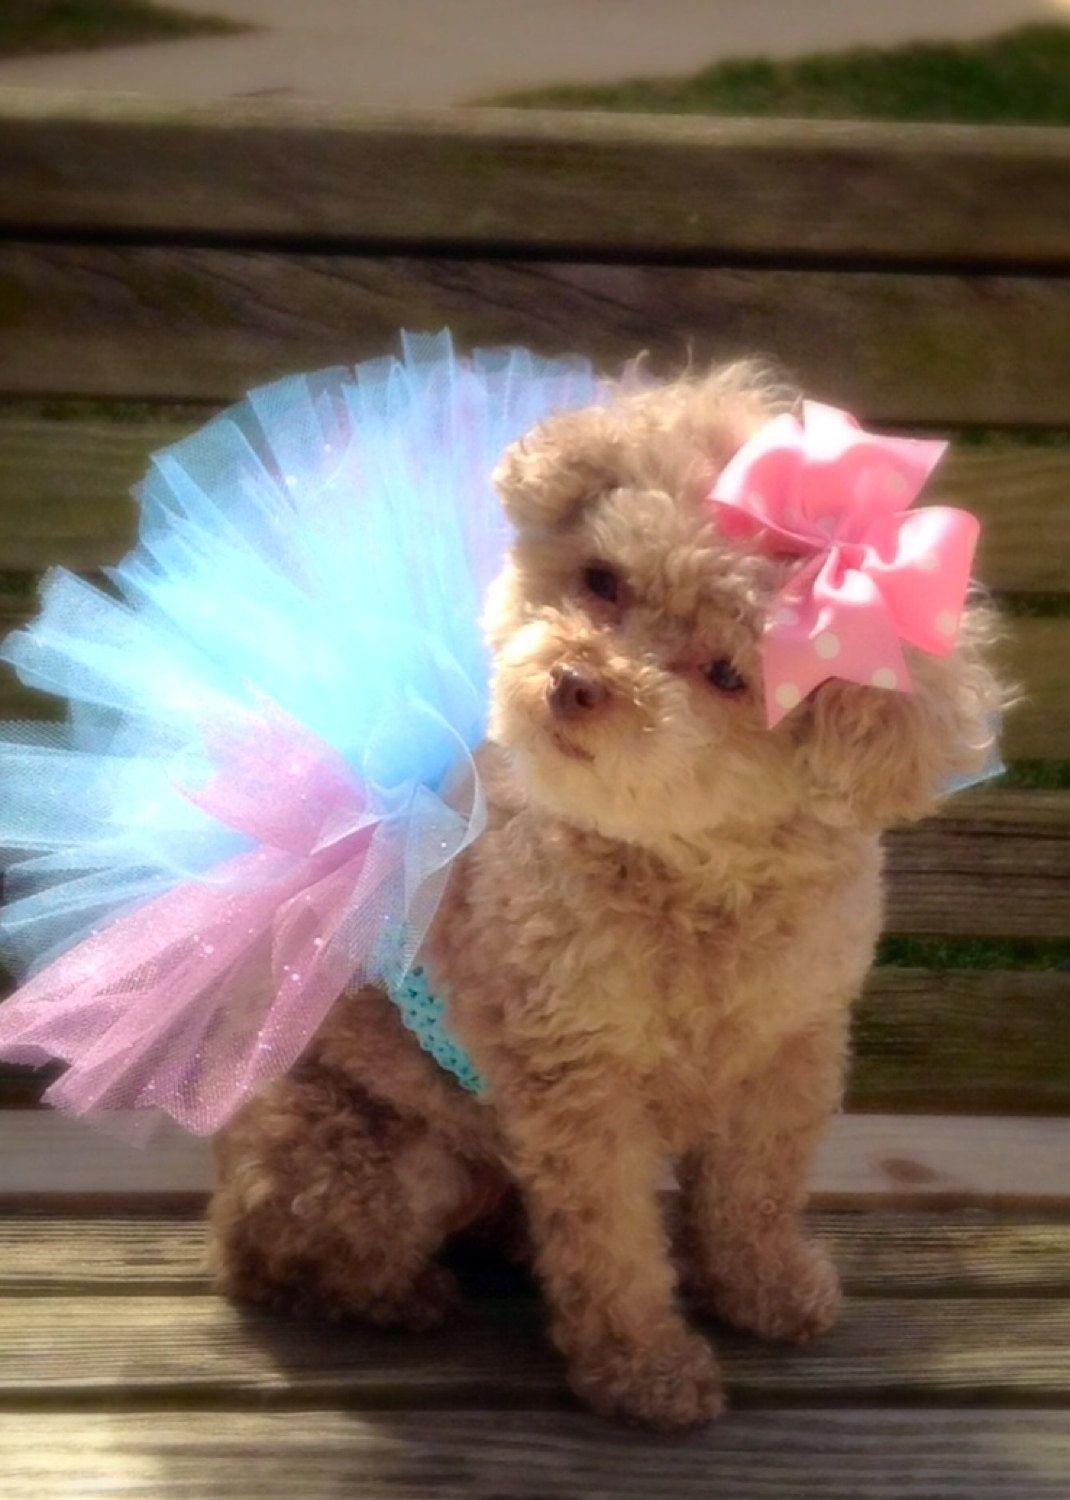 Dog Tutu Extra Fluffy And Full Available In All Colors Monogrammed Bow By Createalley On Etsy Cute Dog Clothes Dog Tutu Dog Clothes Diy